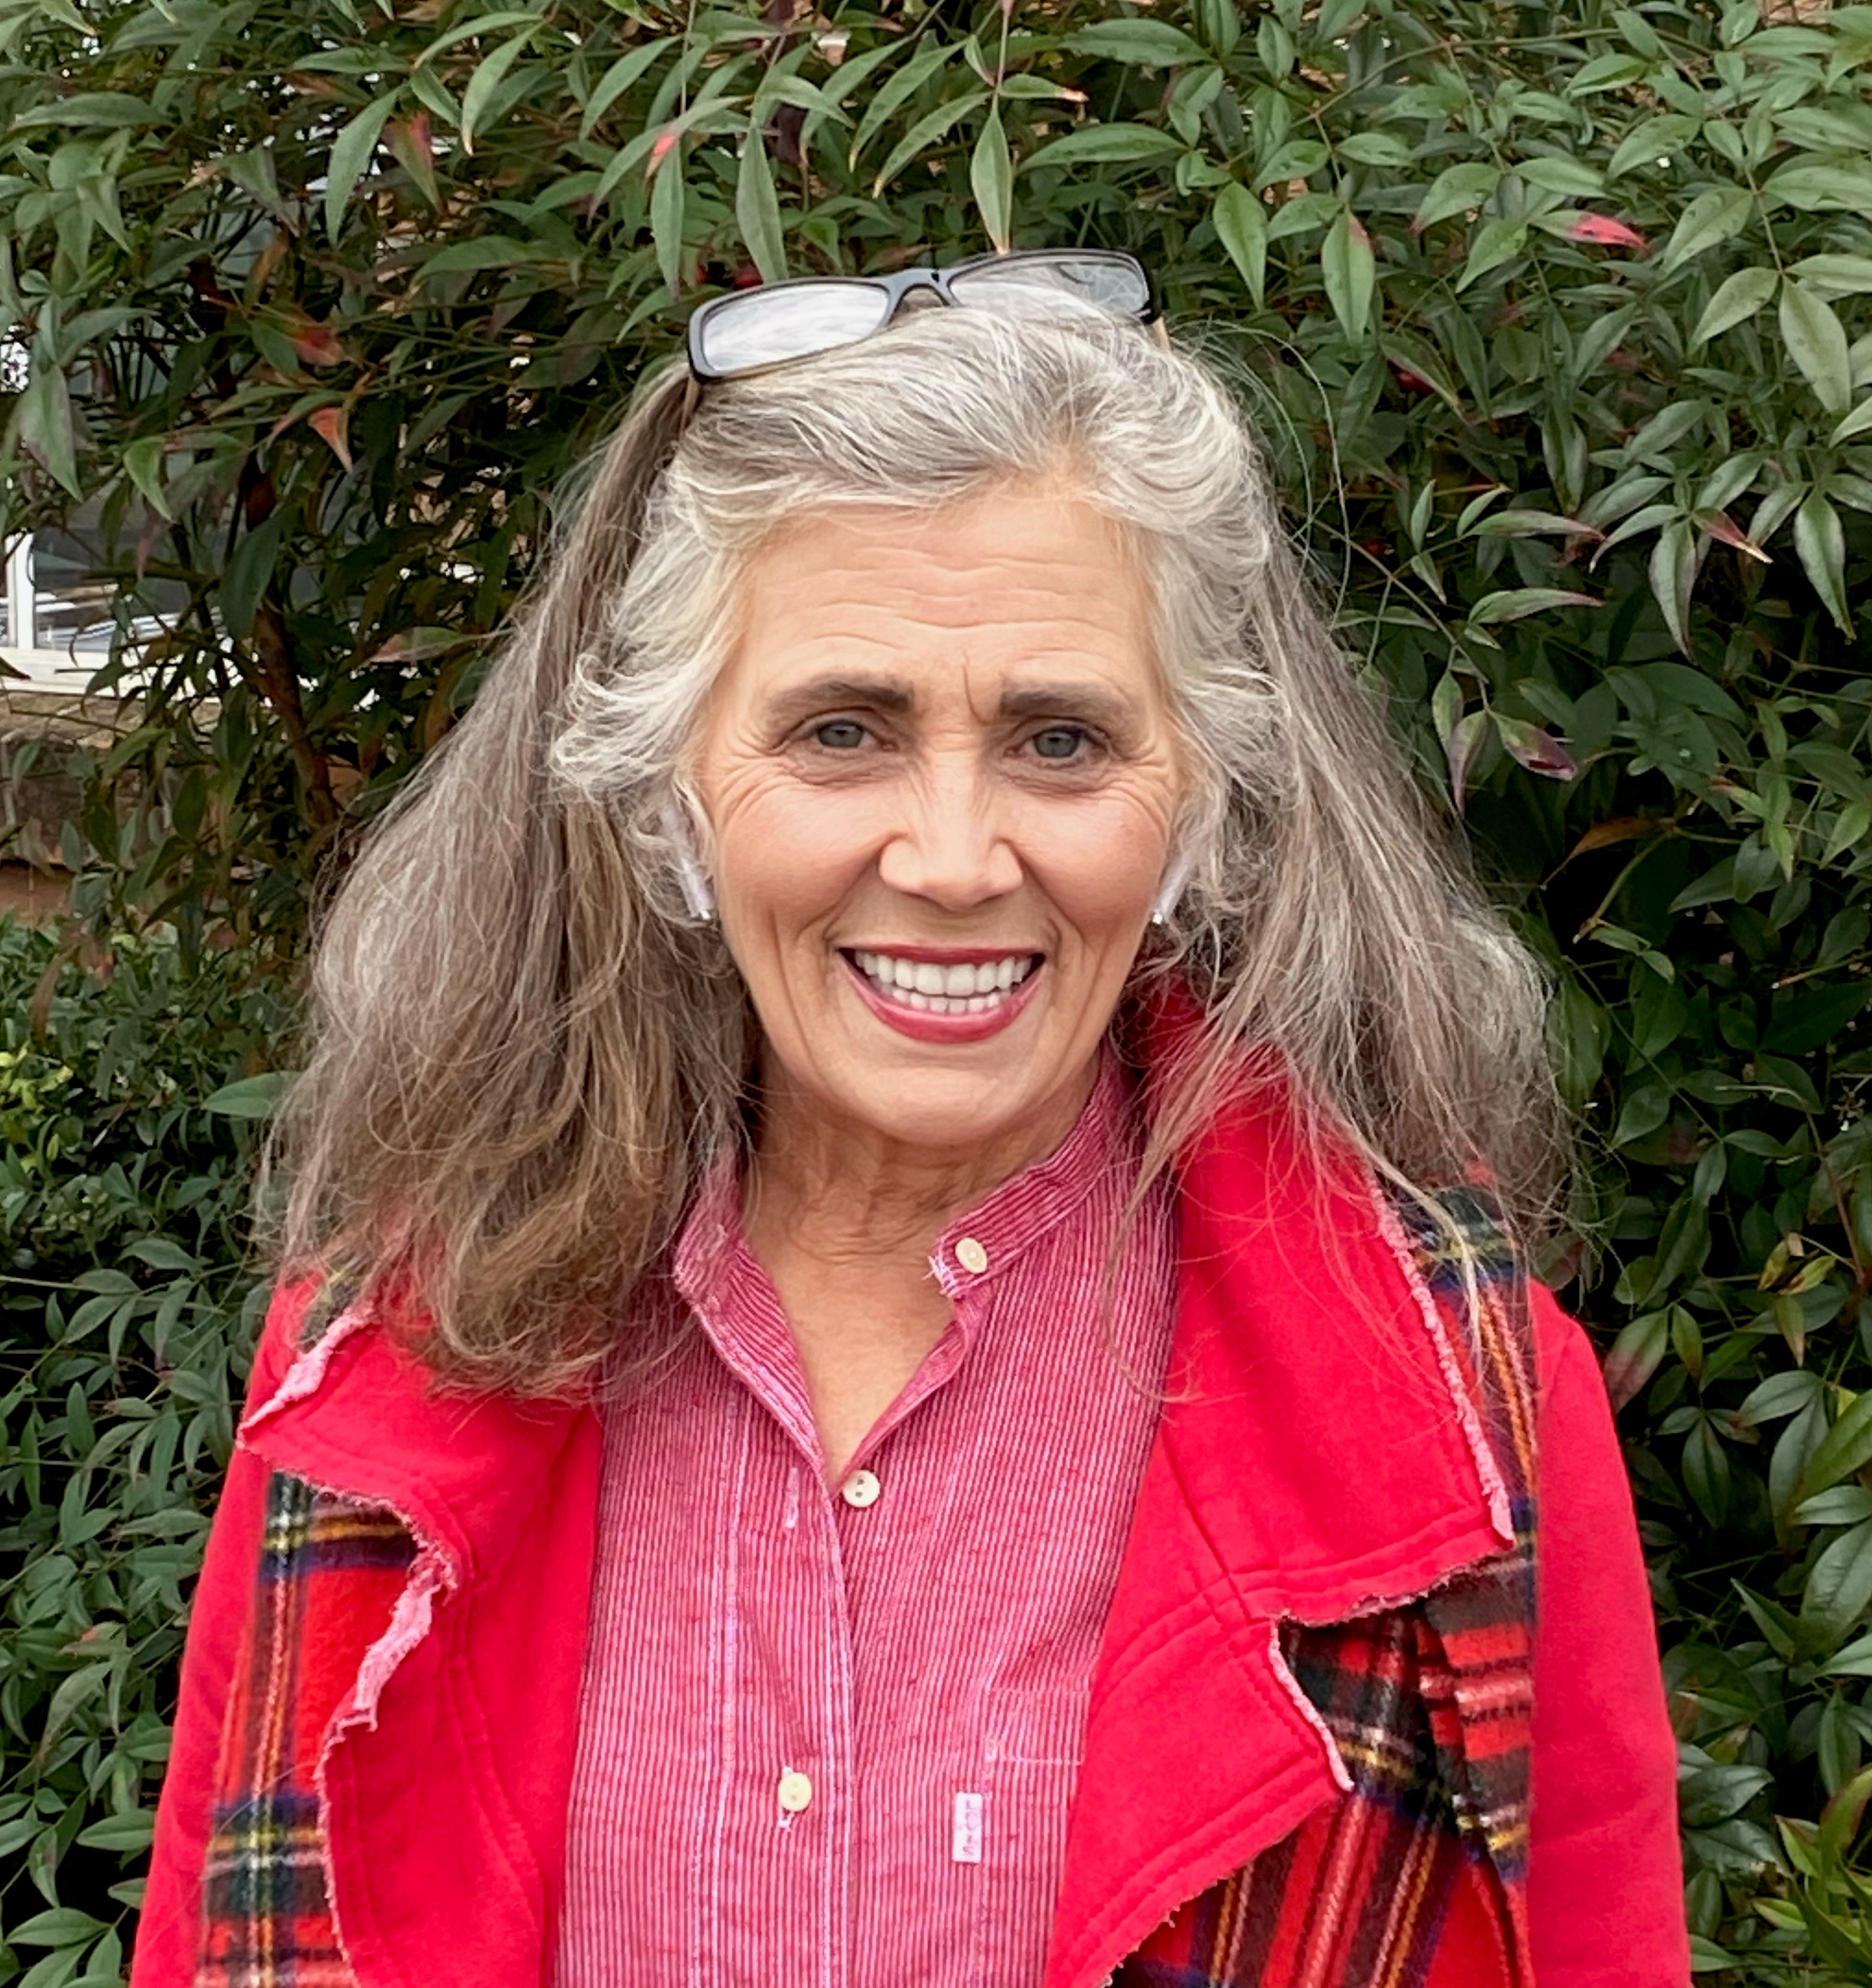 Image of Alyce Finley